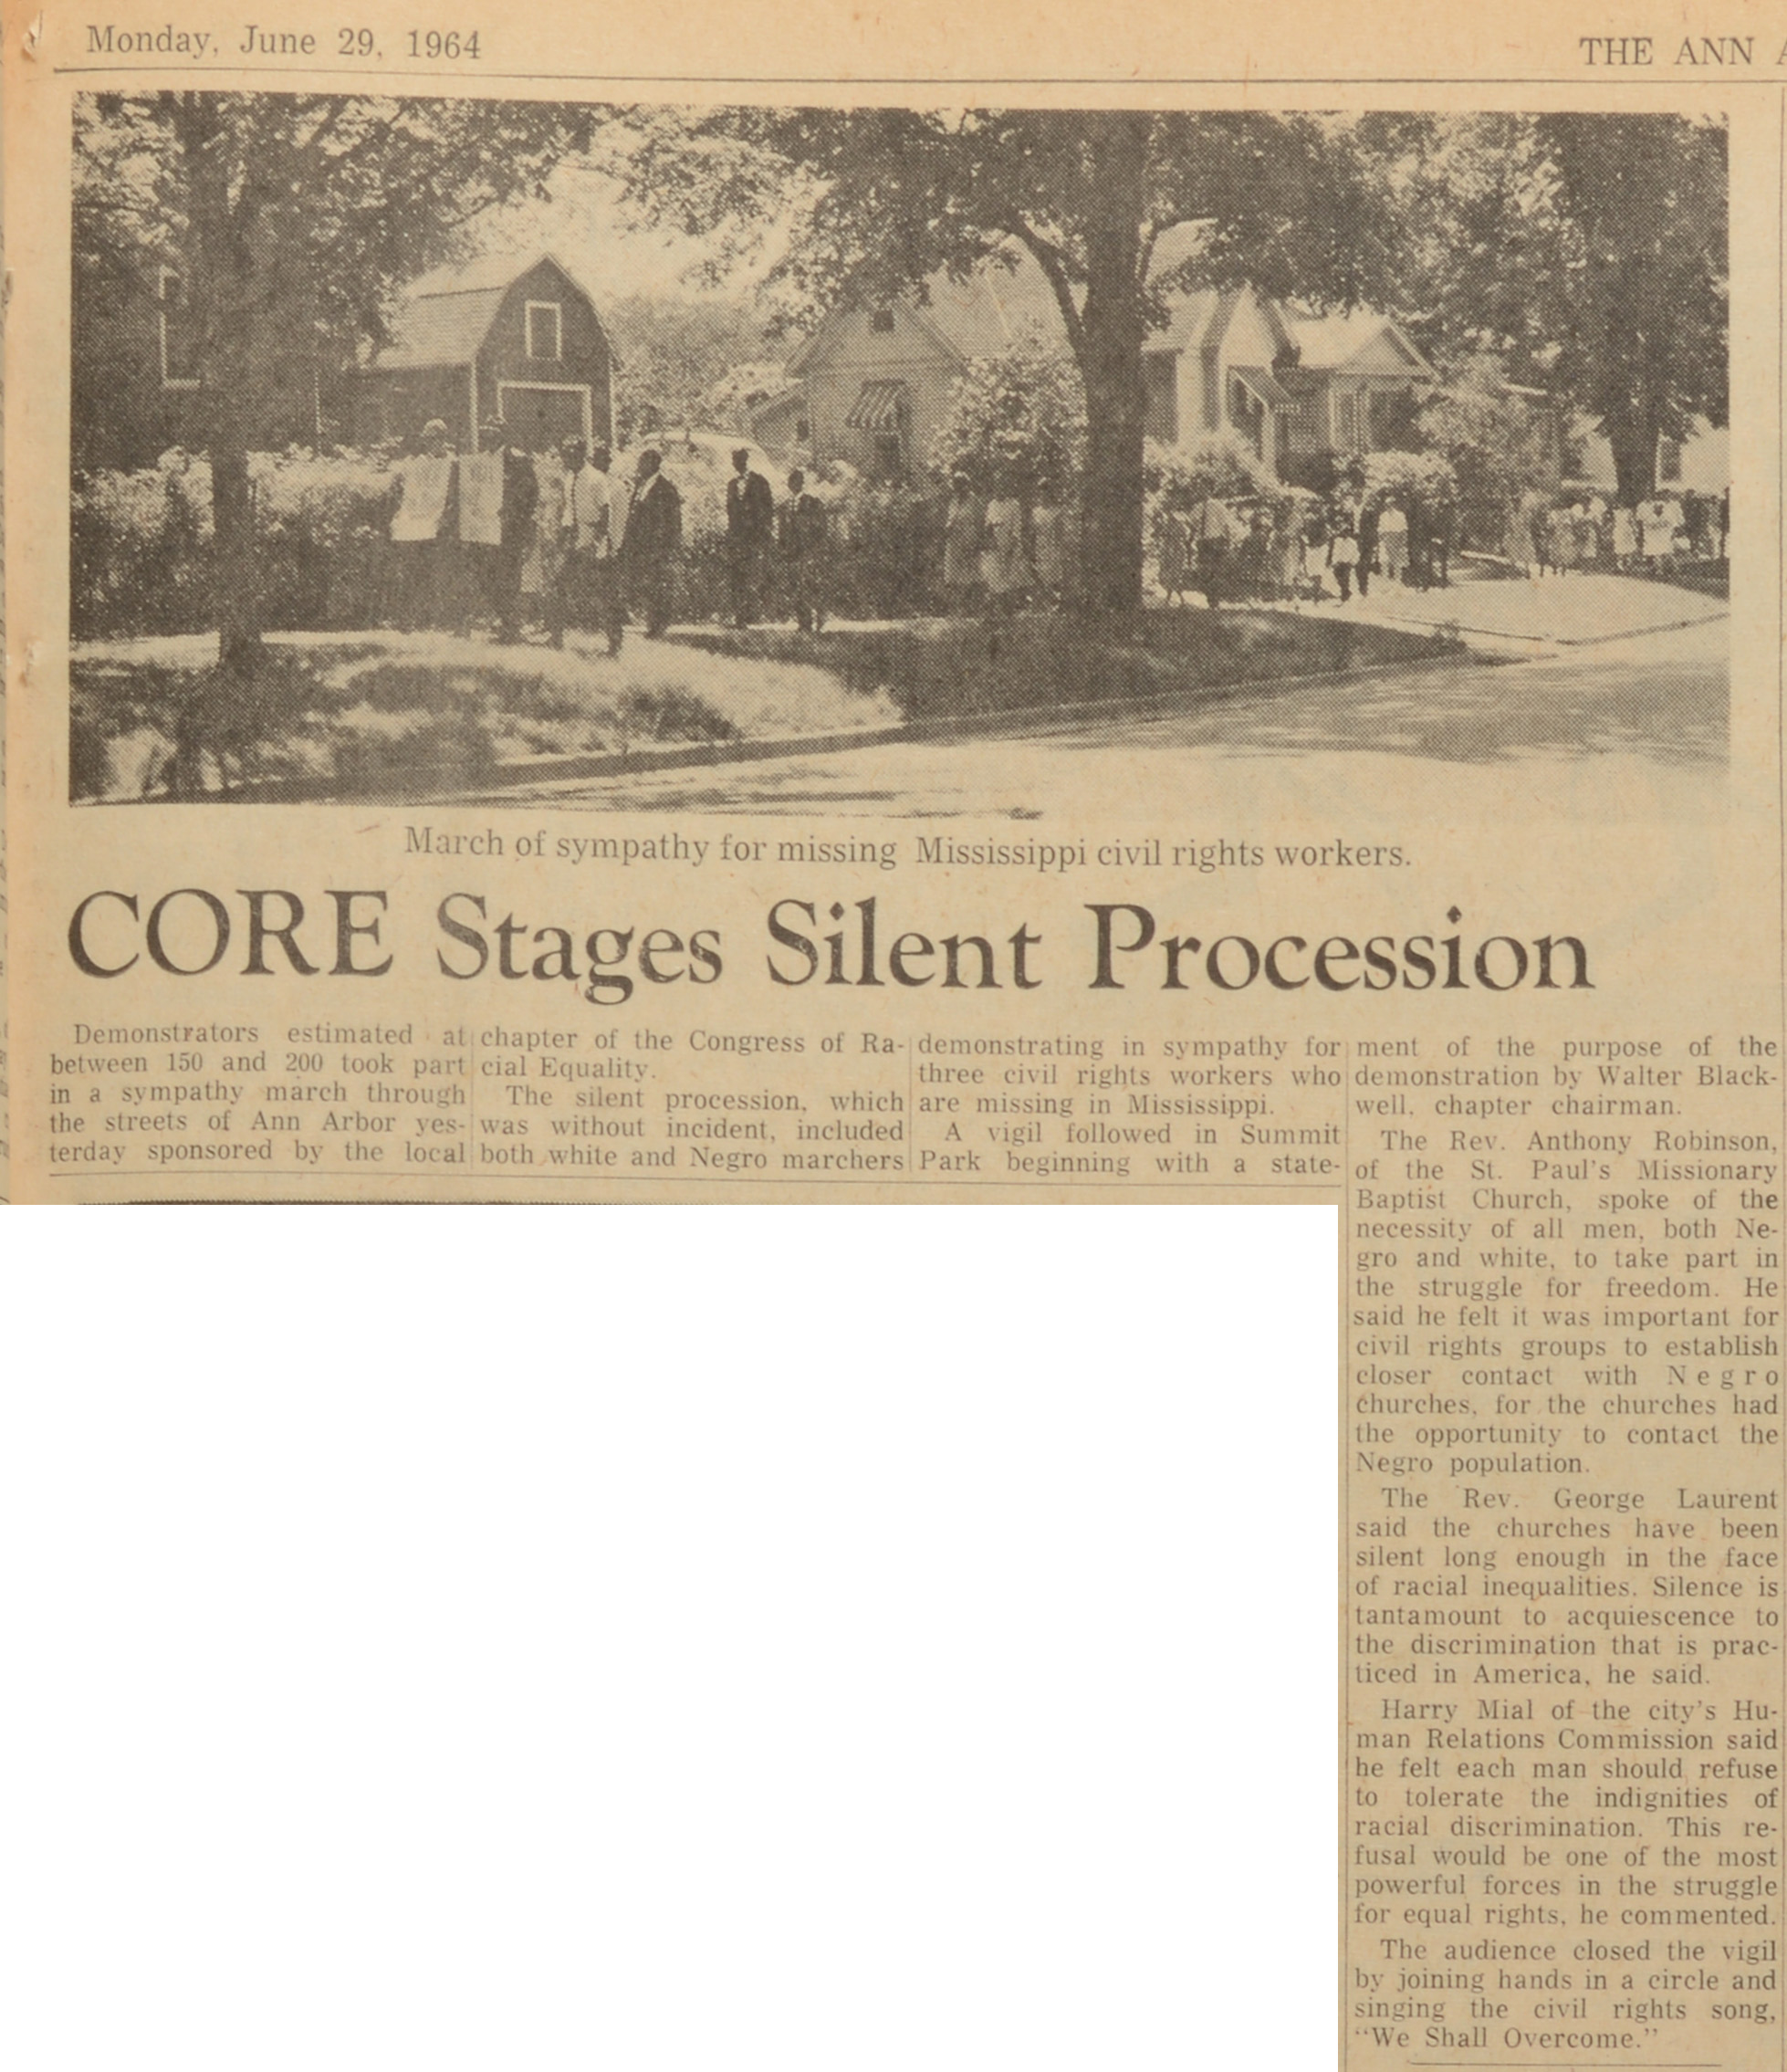 CORE Stages Silent Procession image